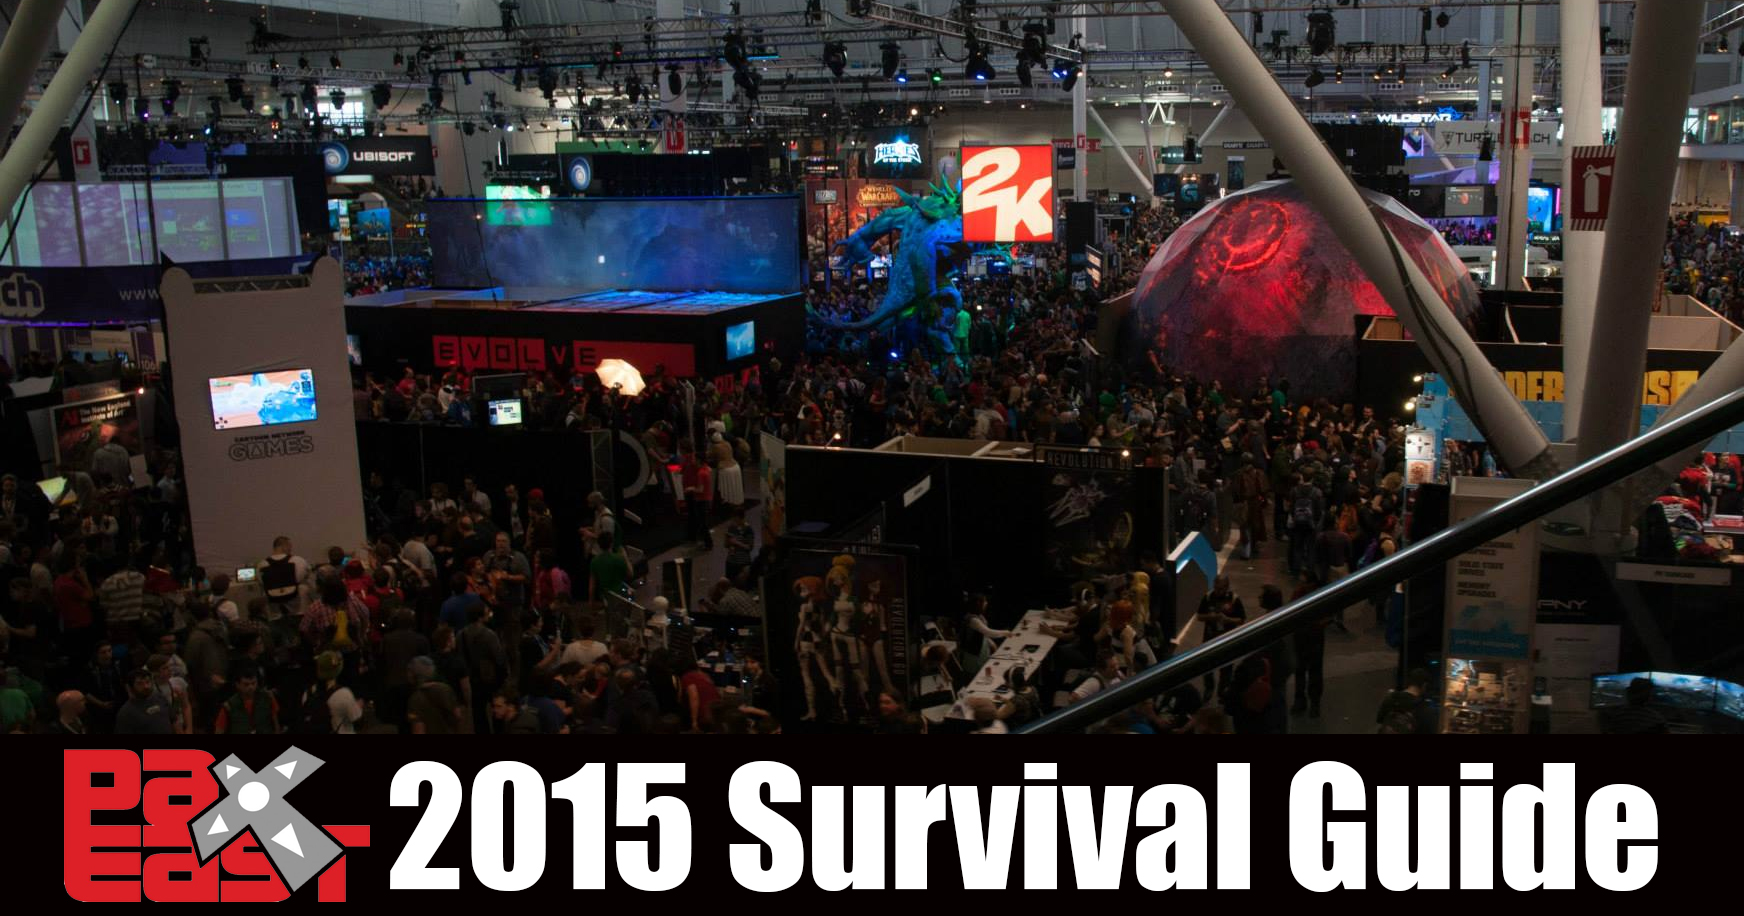 PAX East 2015 Survival Guide